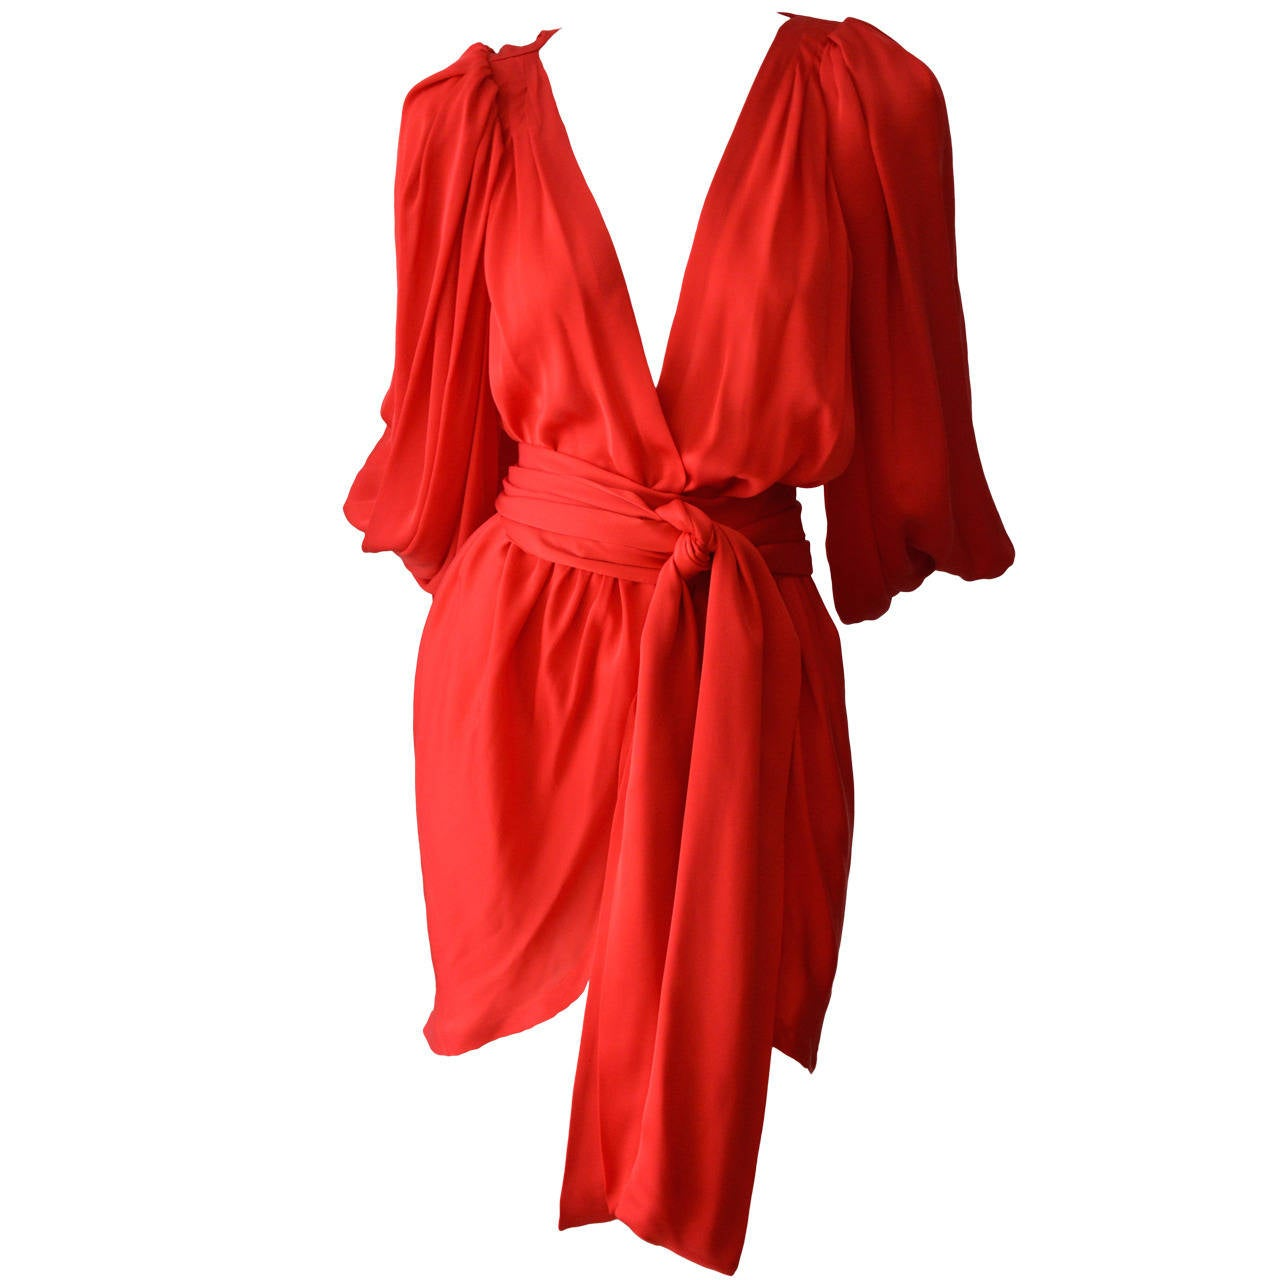 Iconic Yves Saint Laurent Silk Wrap Cocktail Dress 1